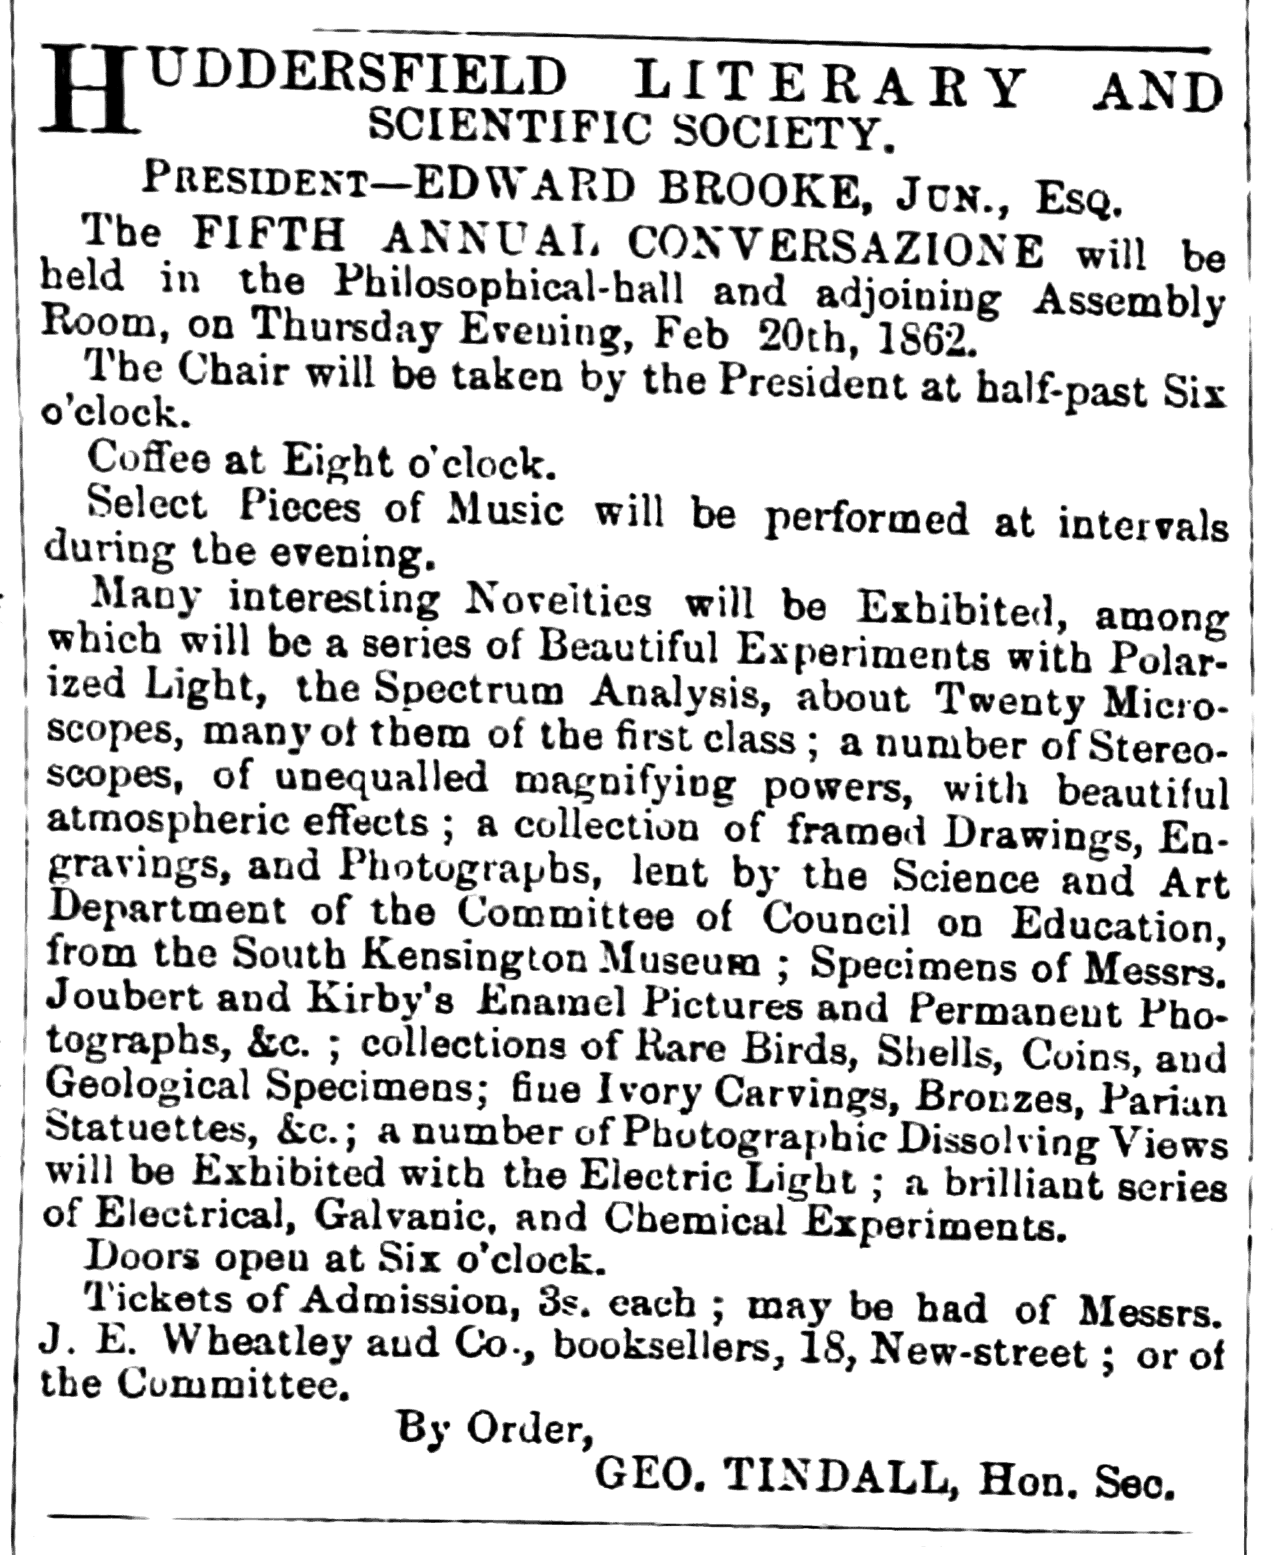 Huddersfield Chronicle 15 February 1862 Huddersfield Literary and Scientific Society.png